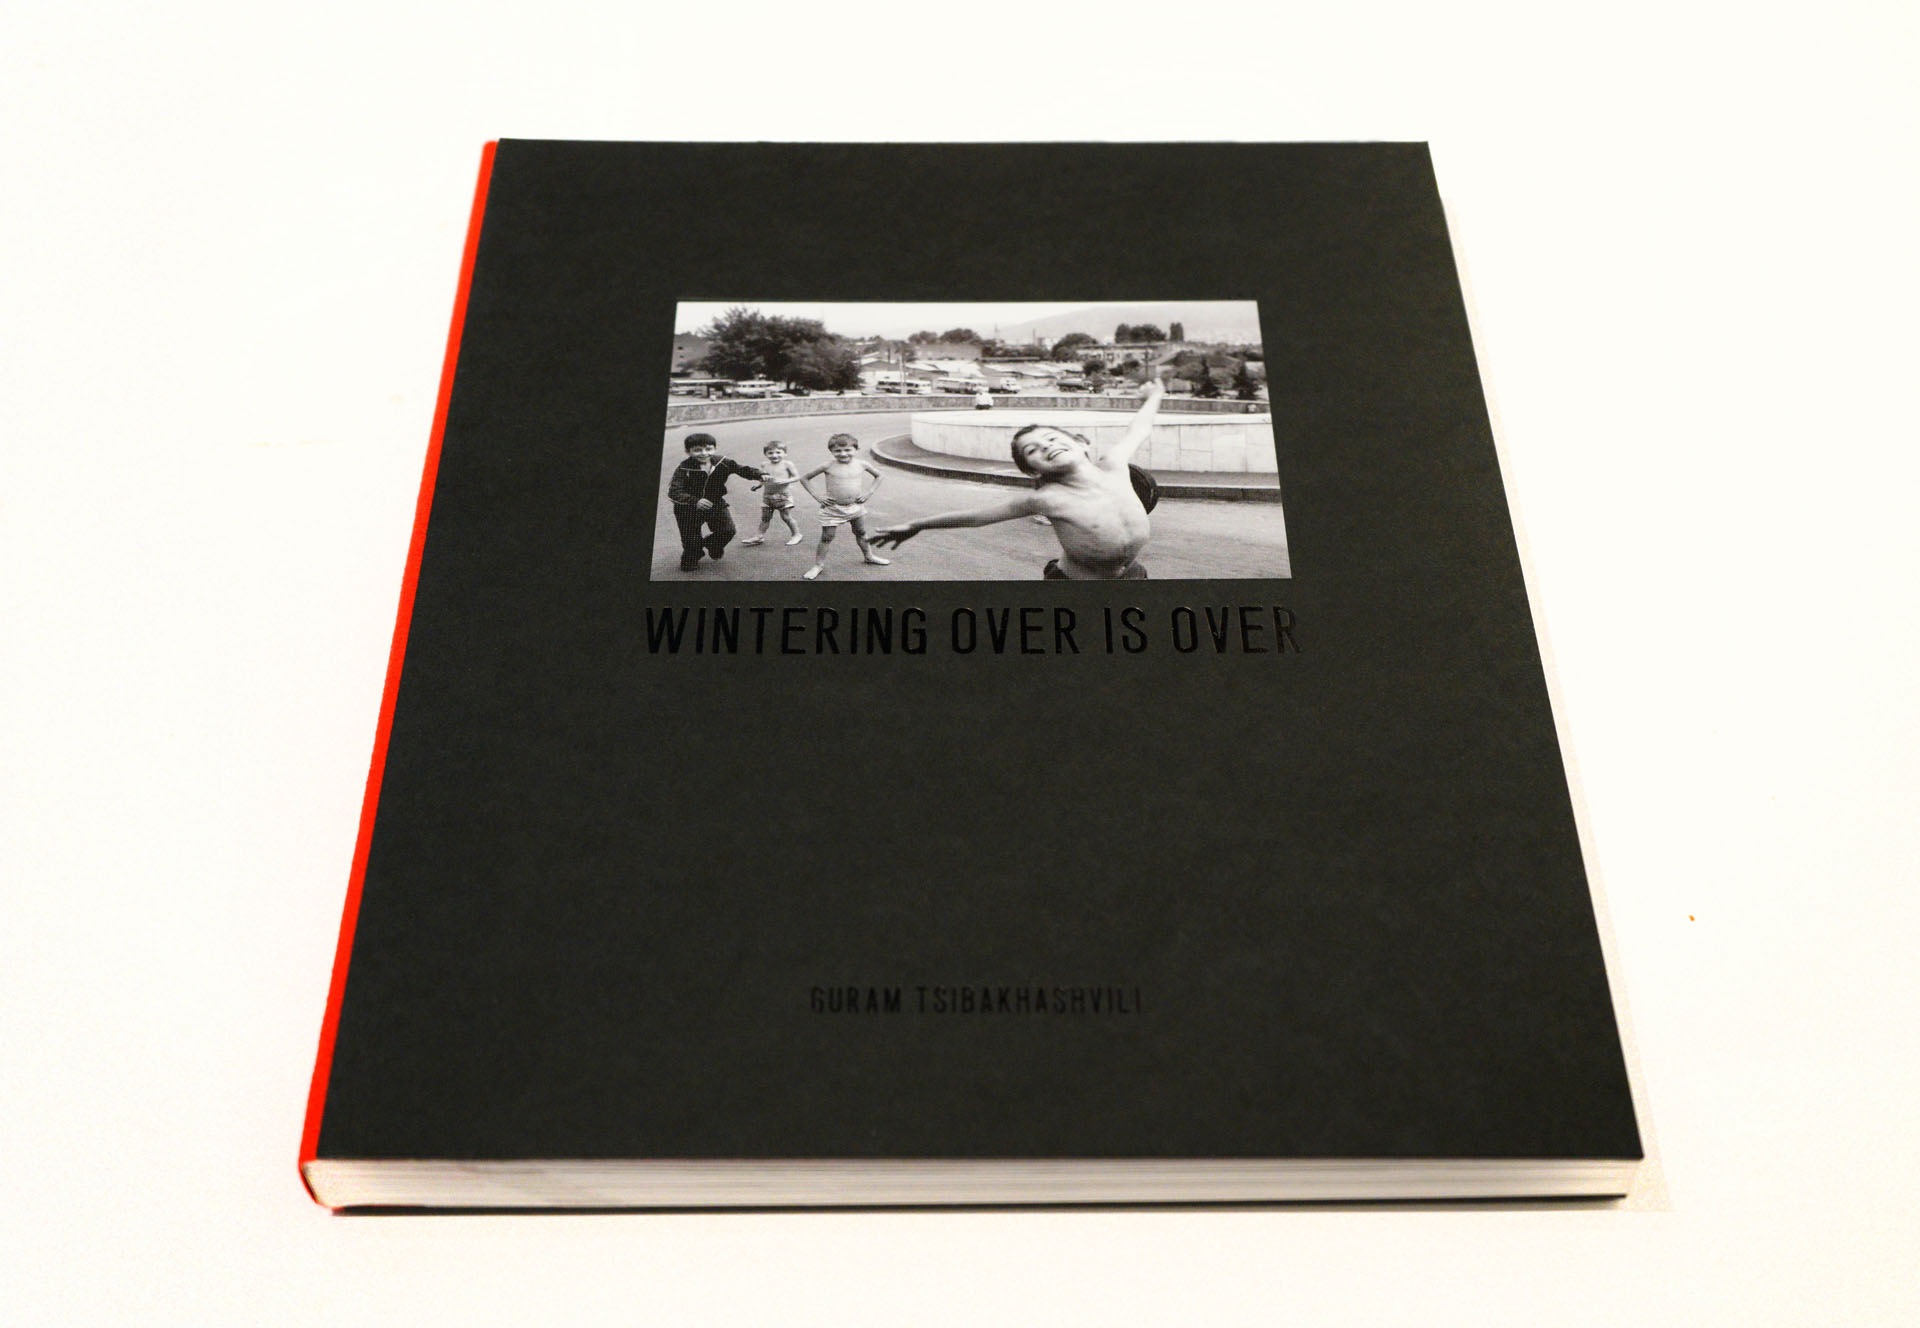 Wintering Over newspaper by by Guram Tsibakhashvili, pub. by INDIGO